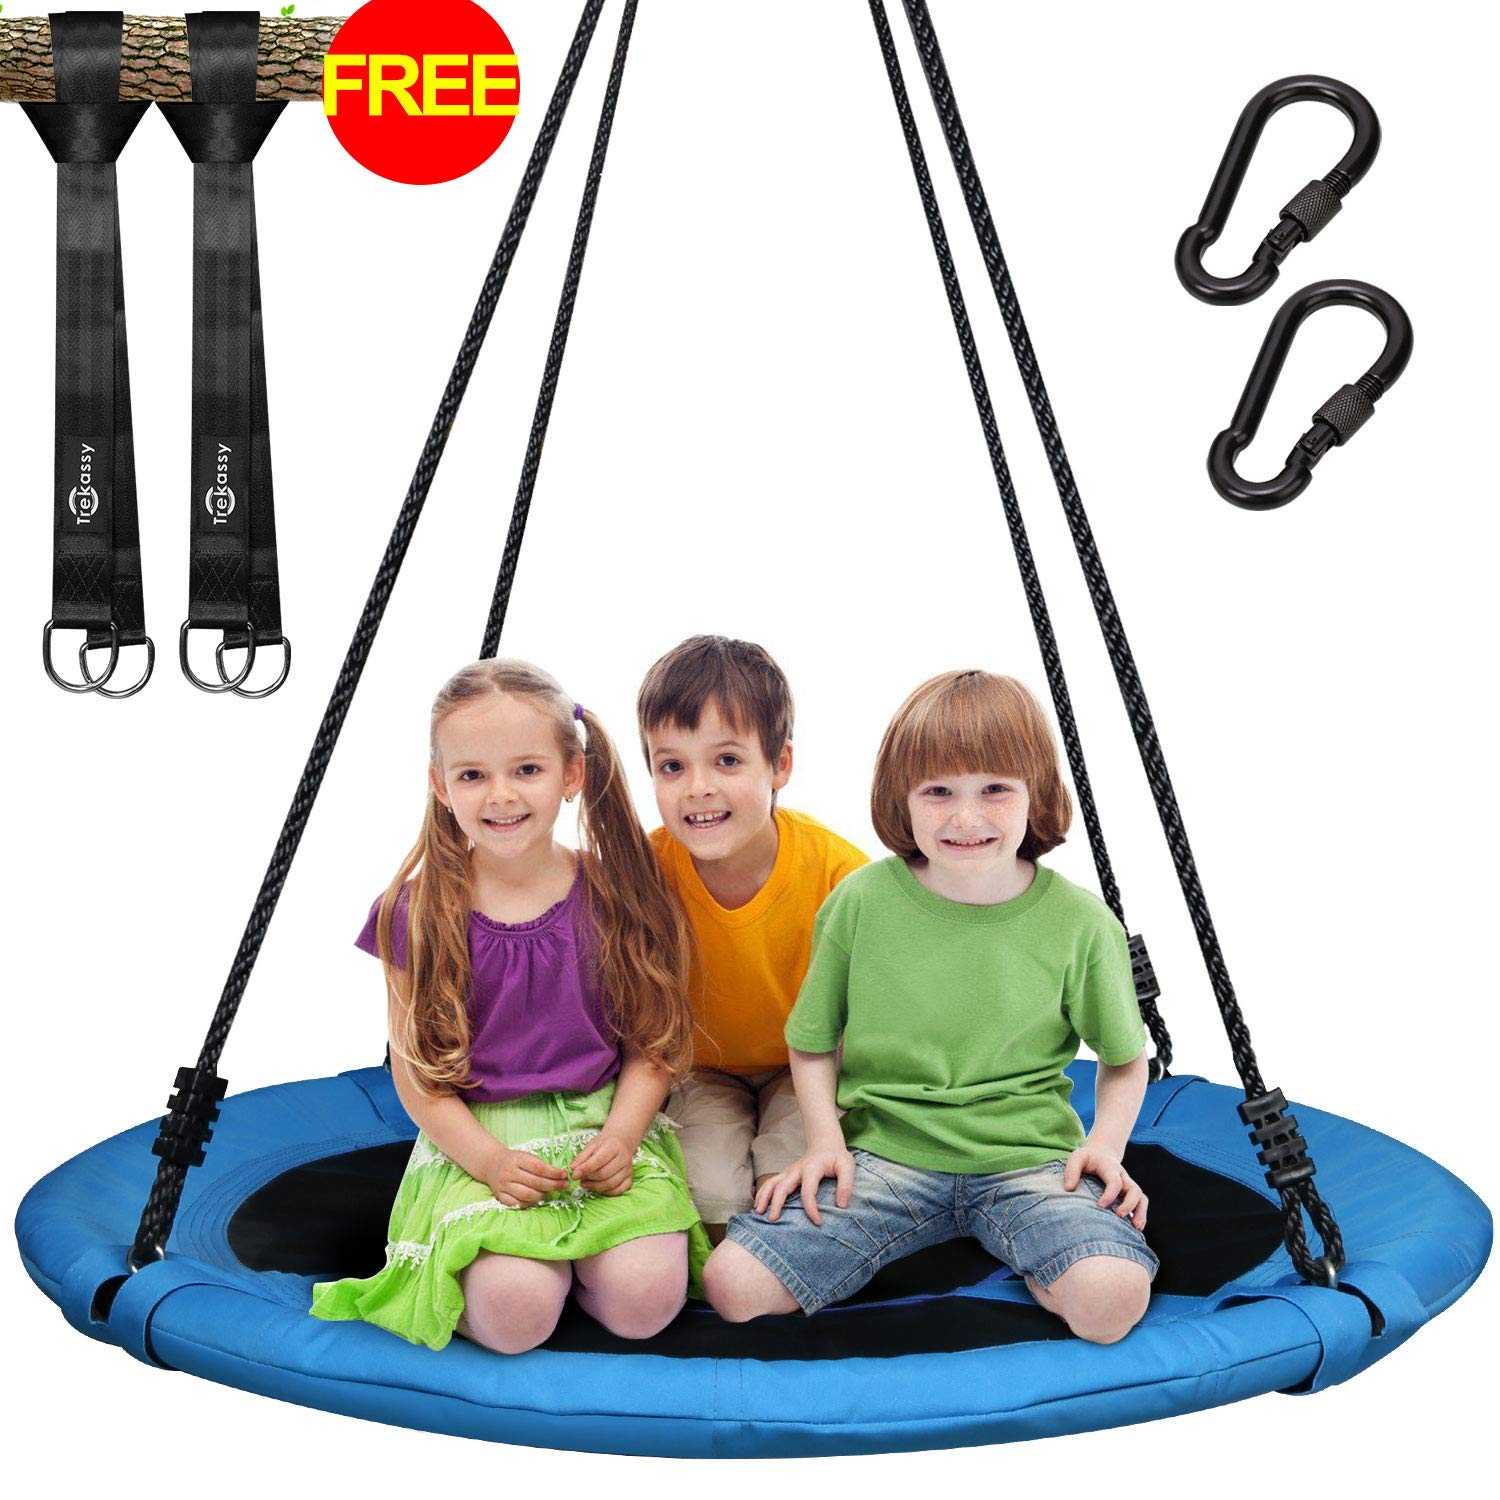 Trekassy 660 lb Saucer Tree Swing Kids Adults 40 Inch 900D Oxford Waterproof Frame Includes 2 Tree Hanging Straps 5ft